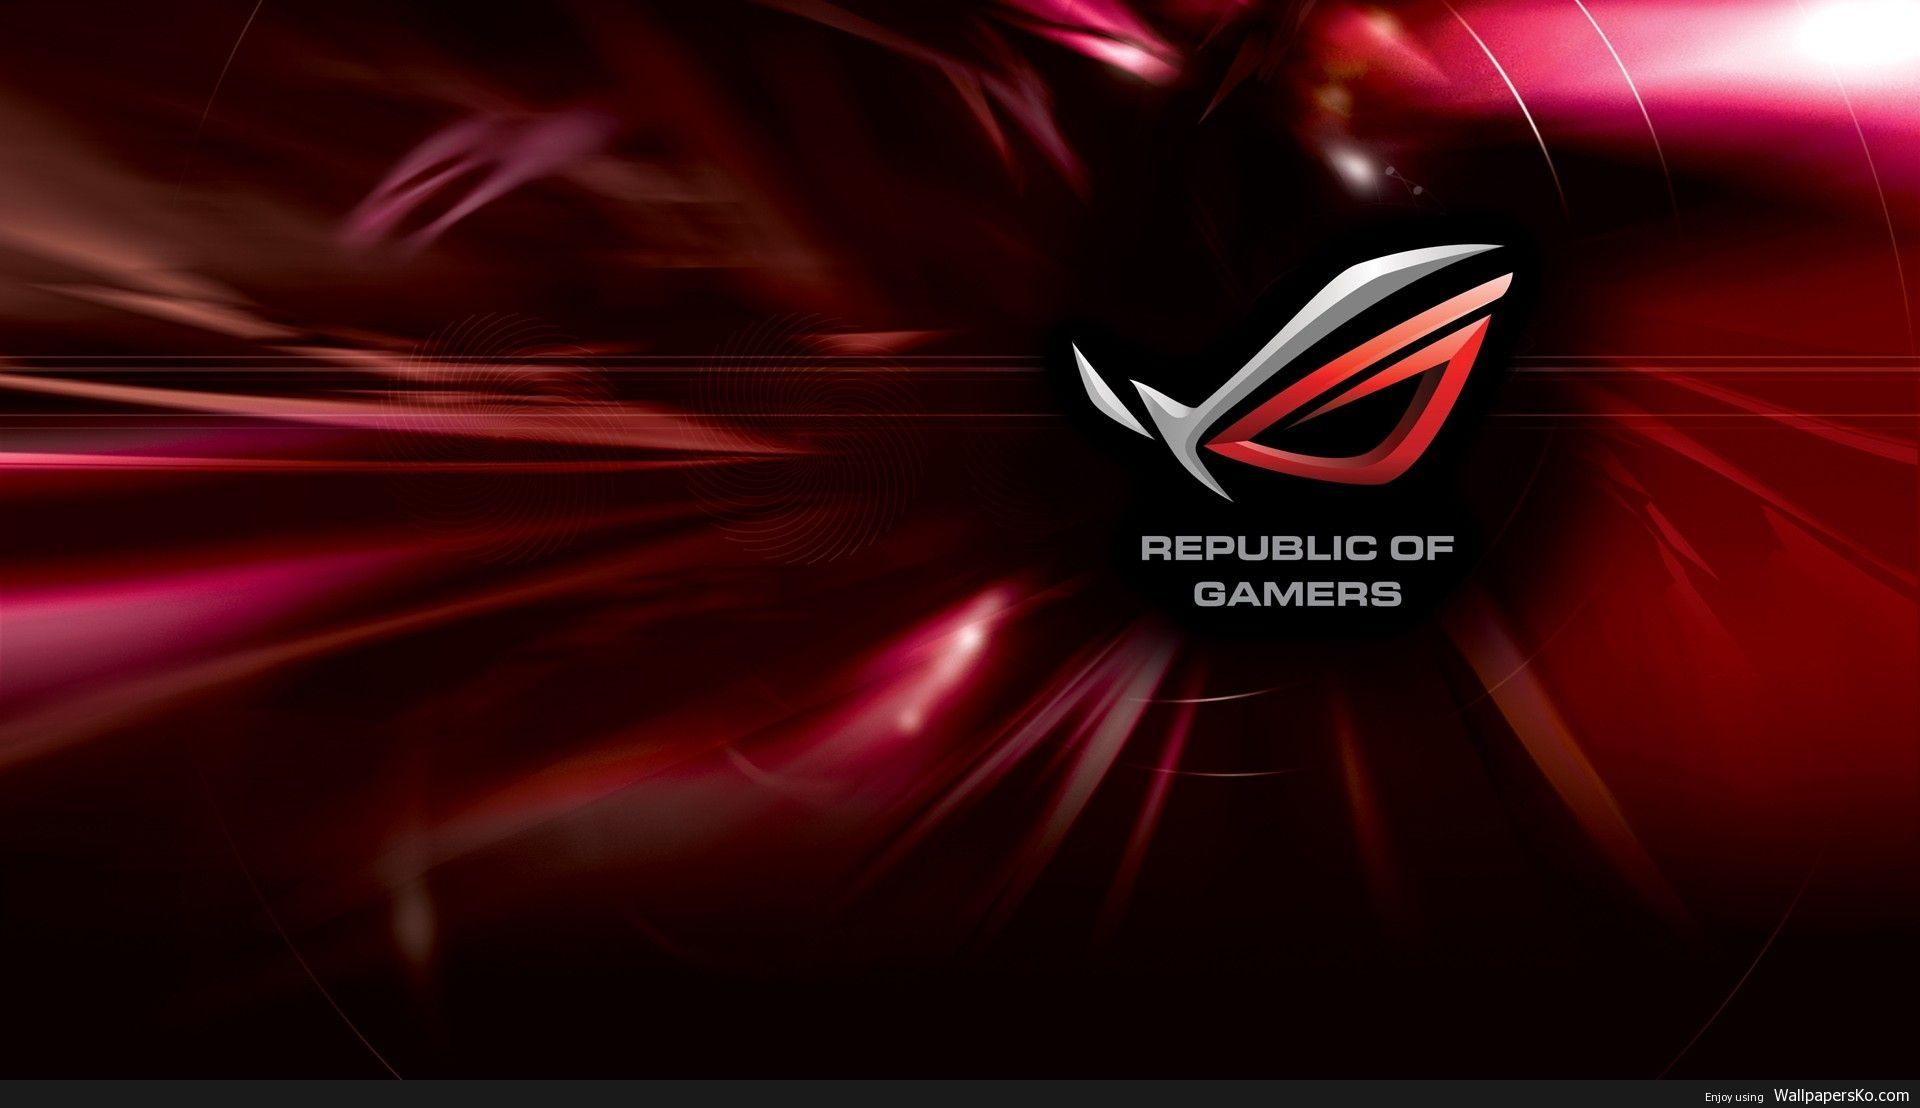 Republic Of Gamers Wallpaper 1920x1080 Hd Http Wallpapersko Com Republic Of Gamers Wallpaper 1920x1080 Hd H Pc Desktop Wallpaper Gaming Wallpapers Asus Rog